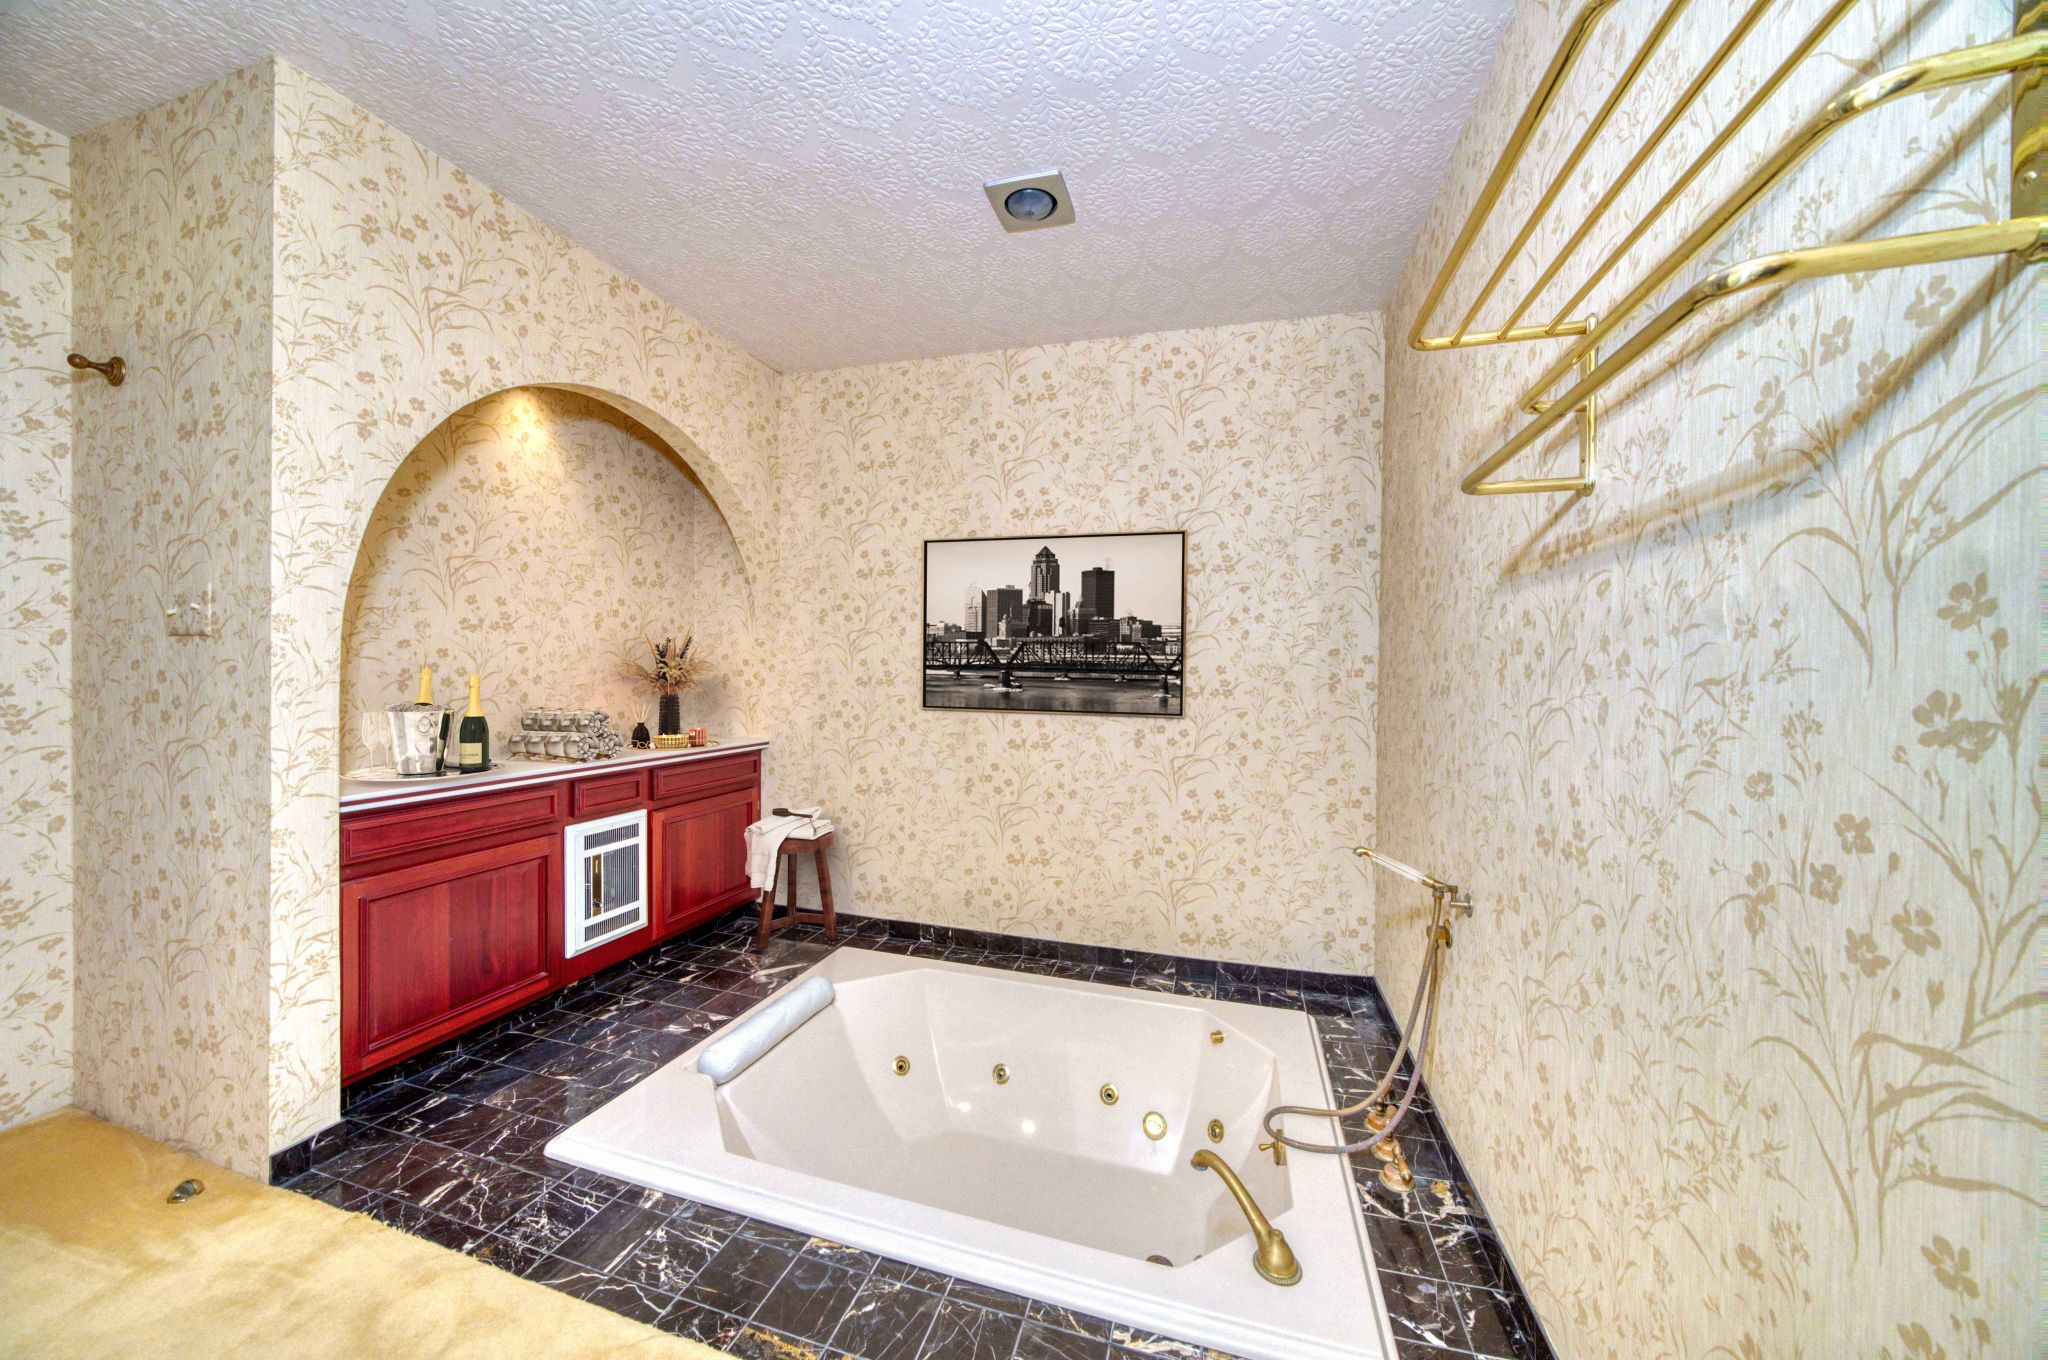 All of the home's nine bedrooms have en suites. There are an additional two full bathrooms and one half-bathroom as well (a total of 11.5).